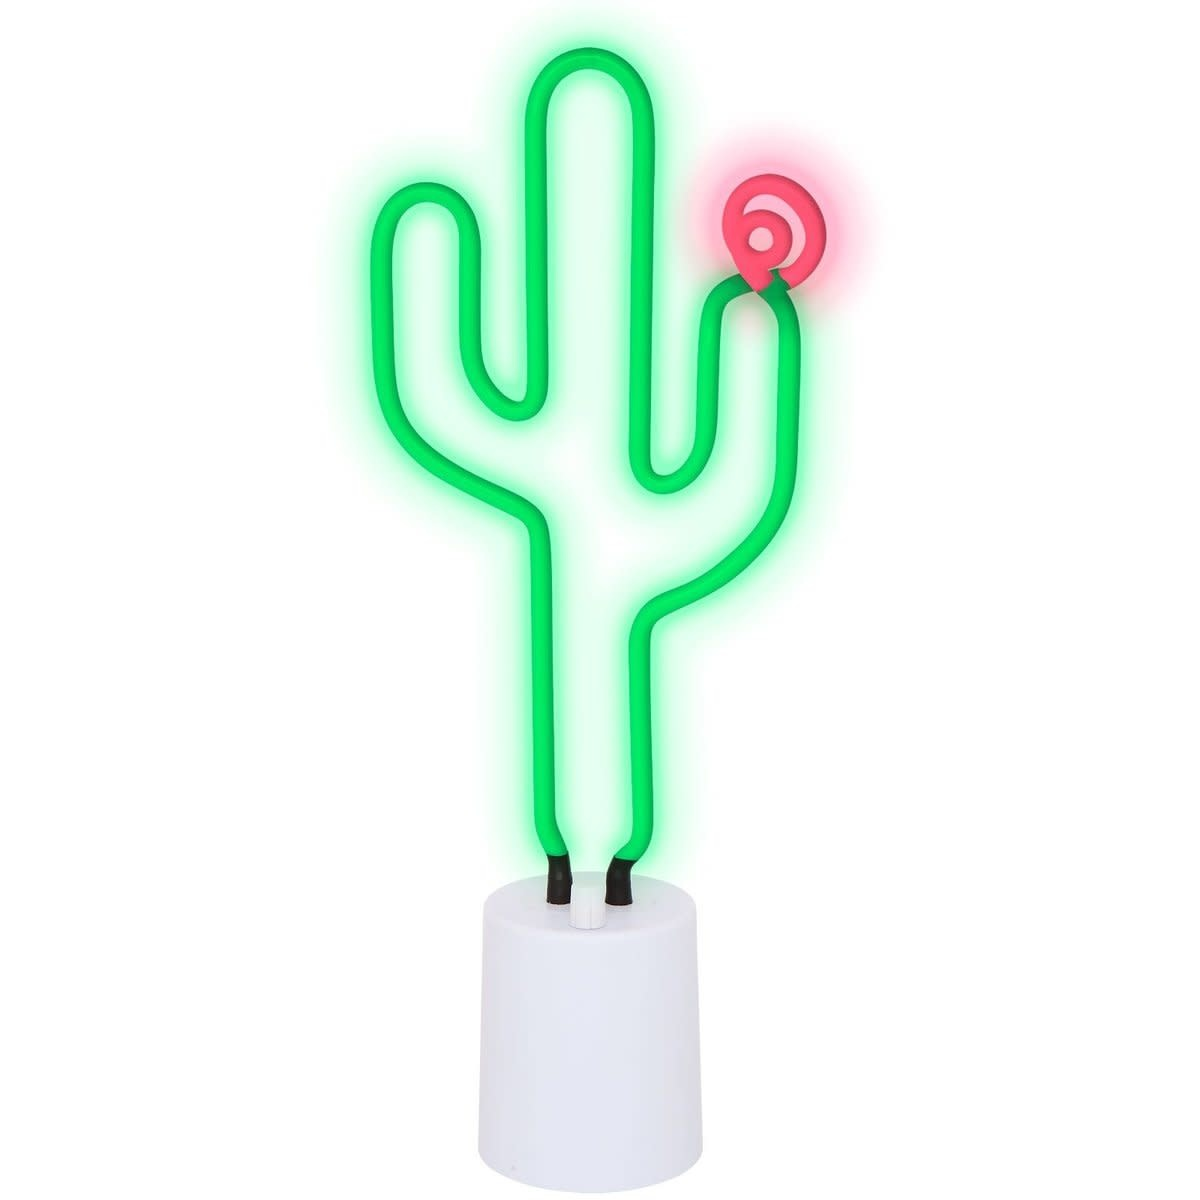 Cactus Neon Desk Light Large (White Base) with Flower